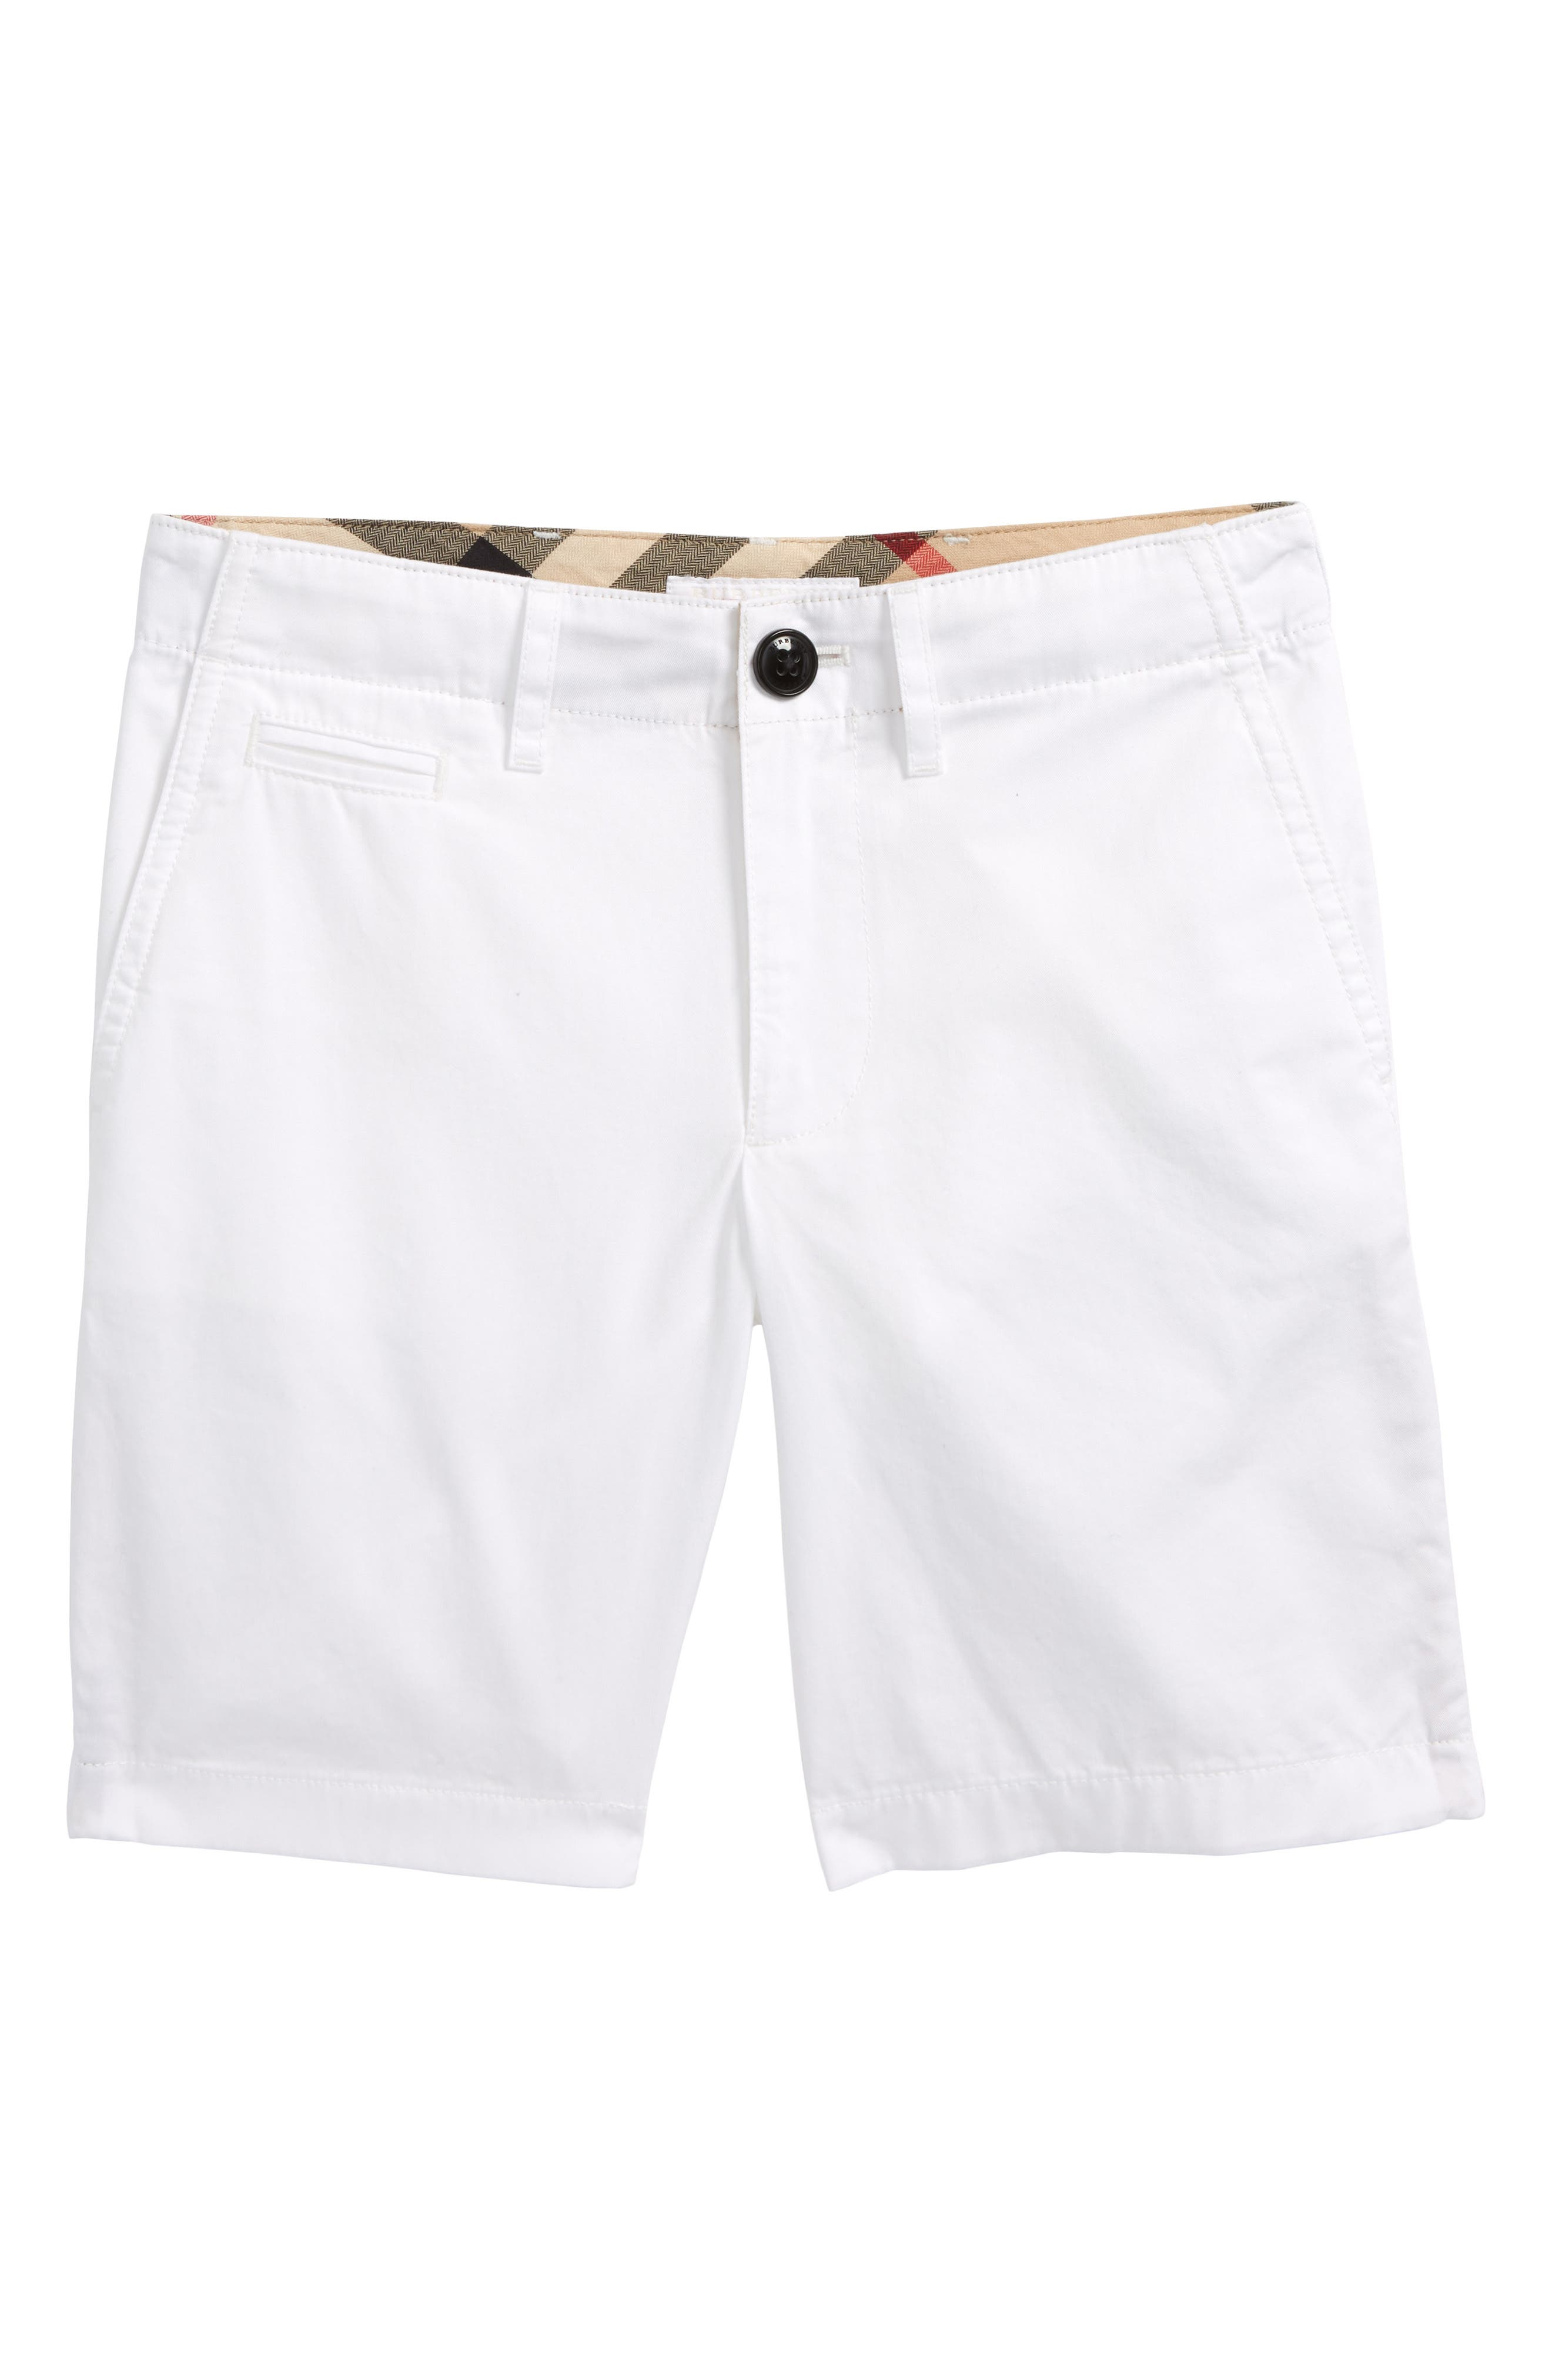 Tristen Cotton Twill Shorts,                         Main,                         color, White